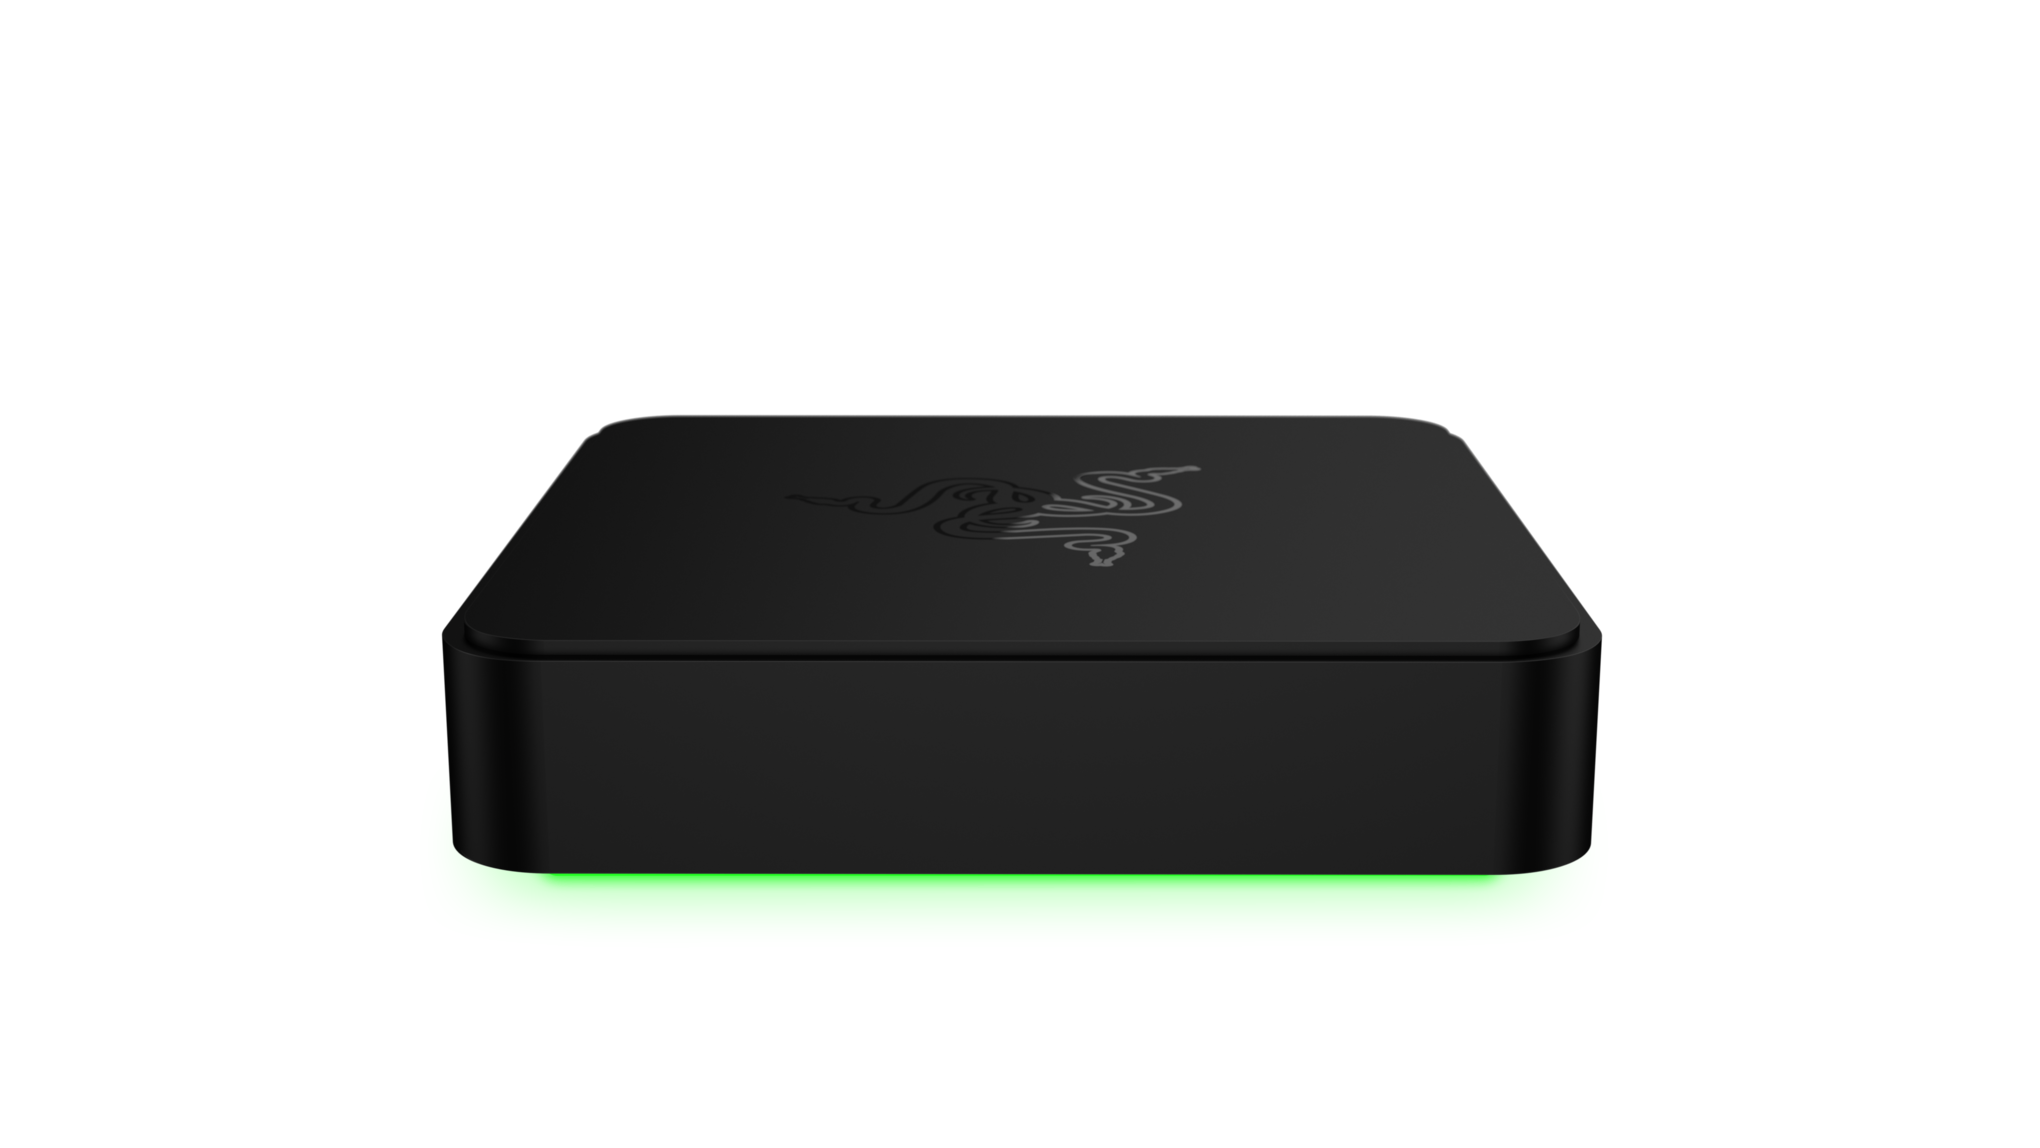 Razer micro-console will deliver movies, music, games to your TV with Android TV